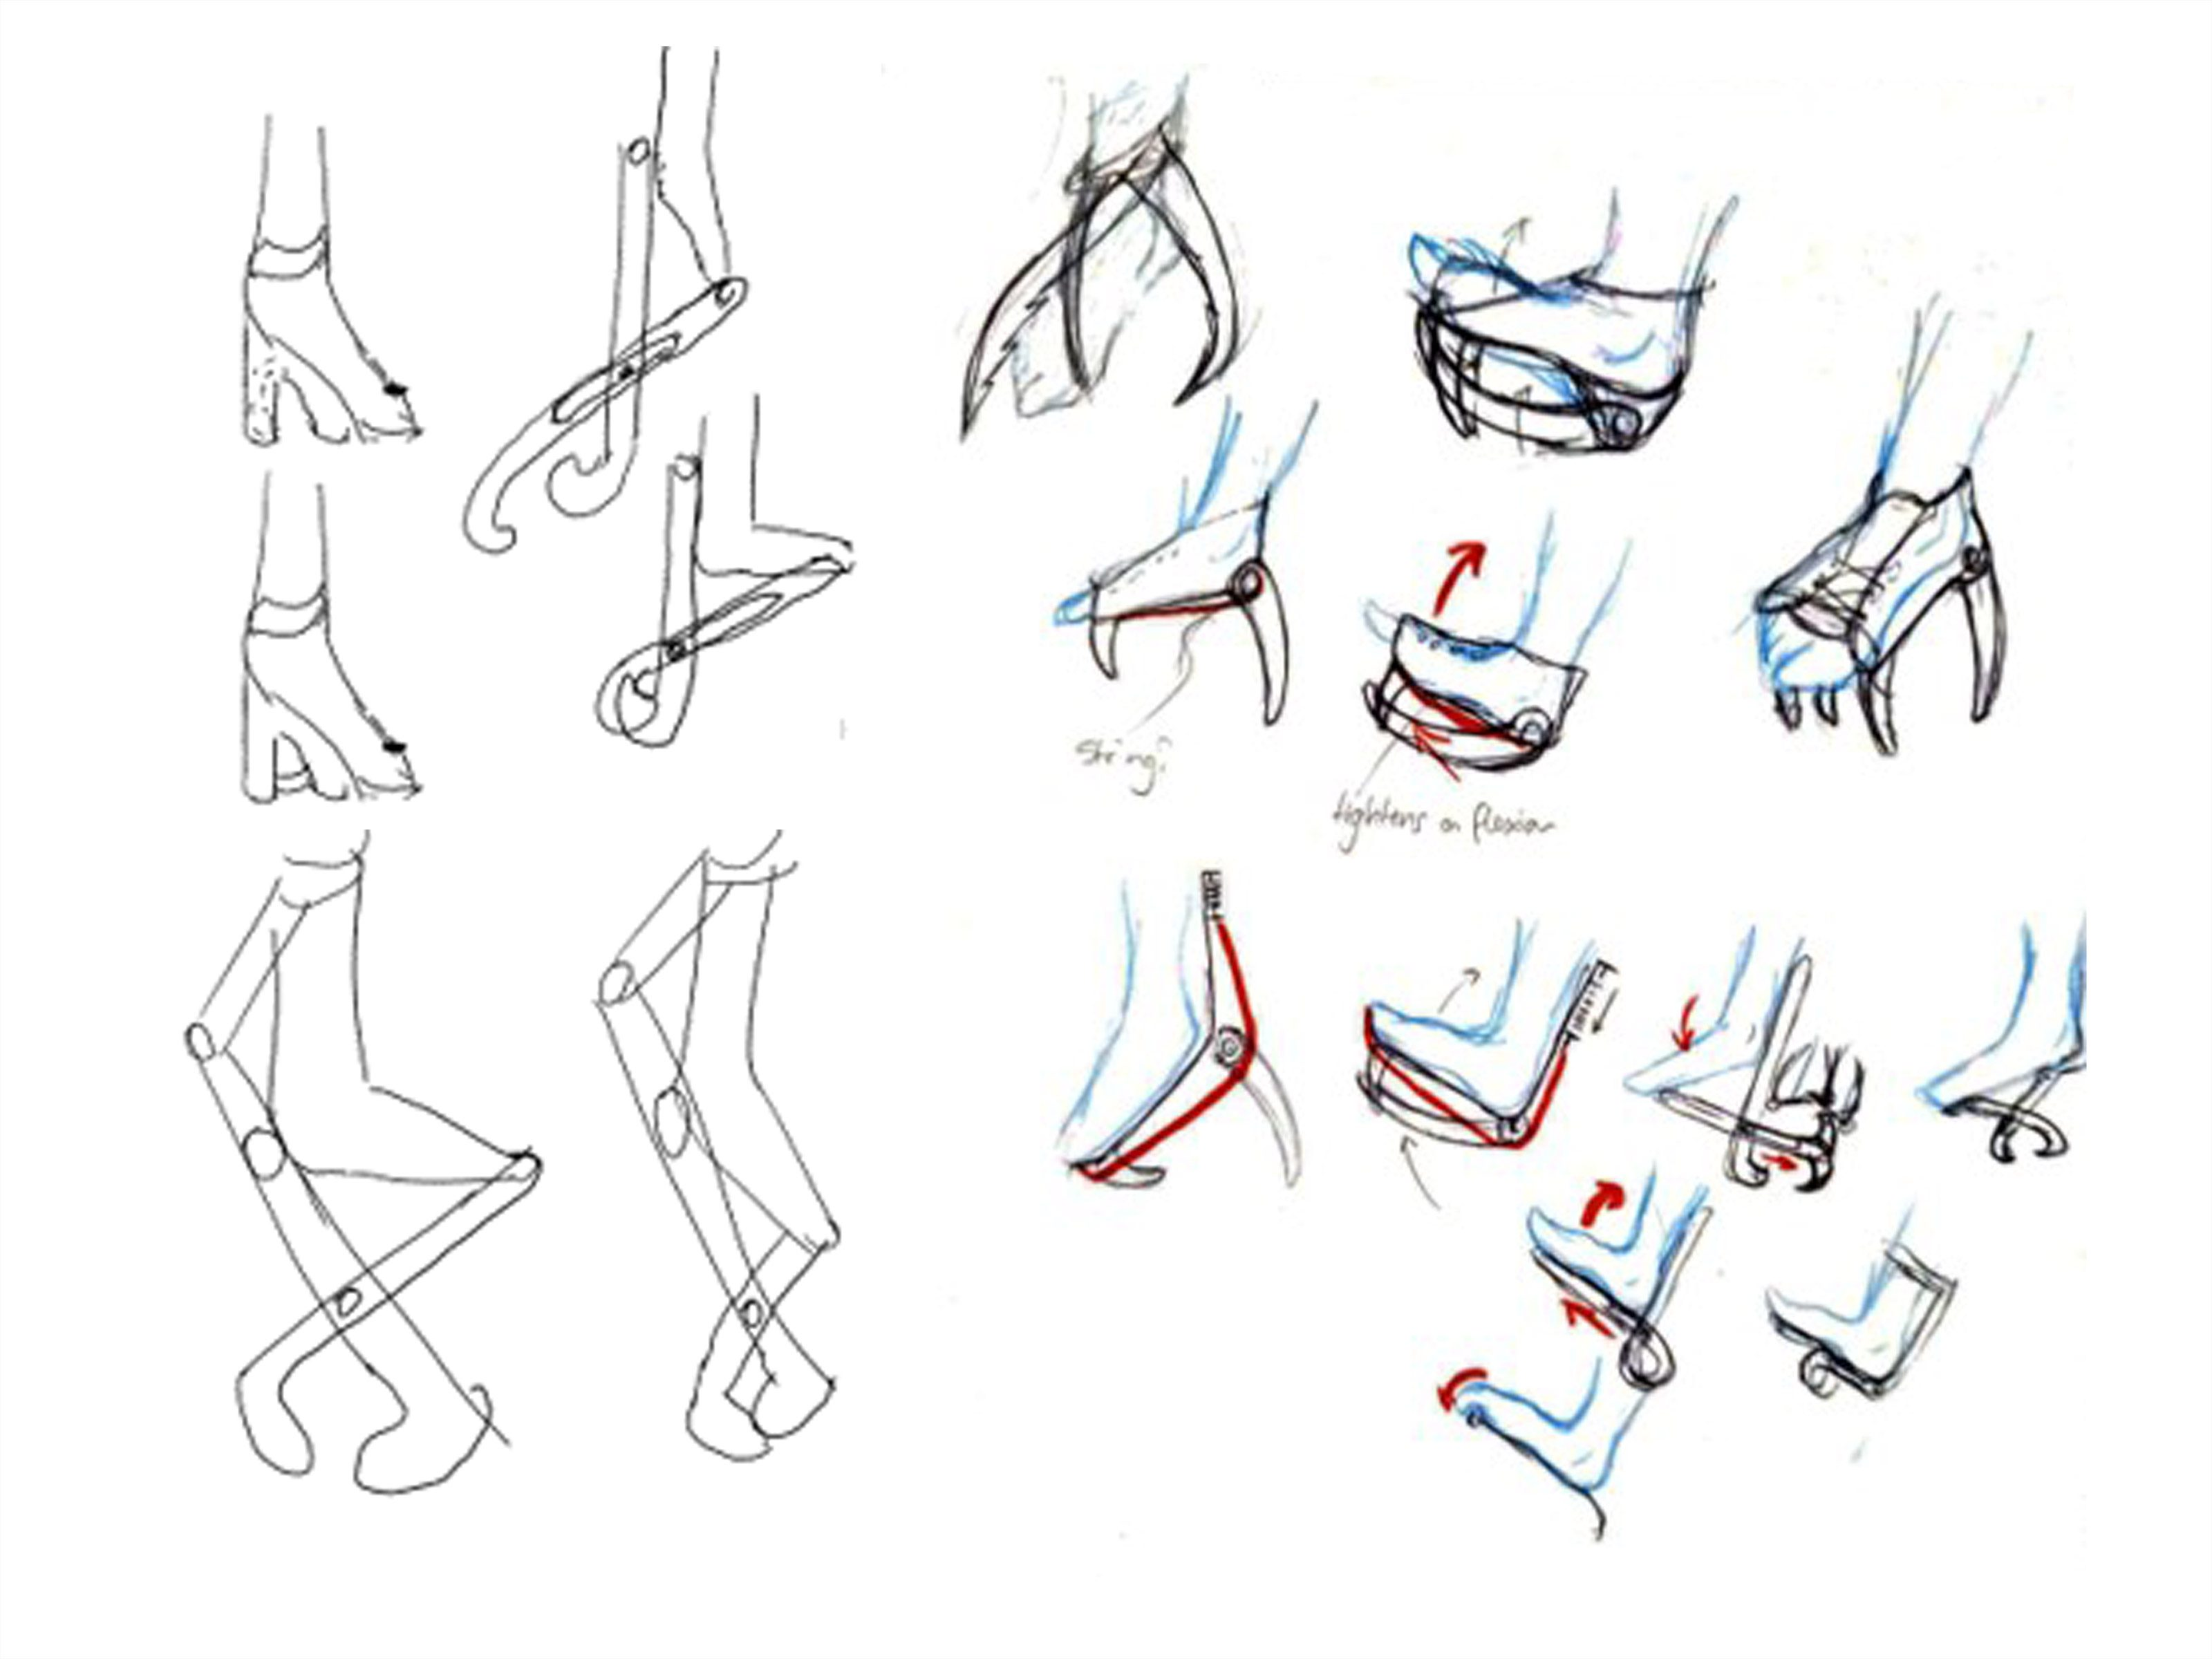 Exploration sketches of movement methods